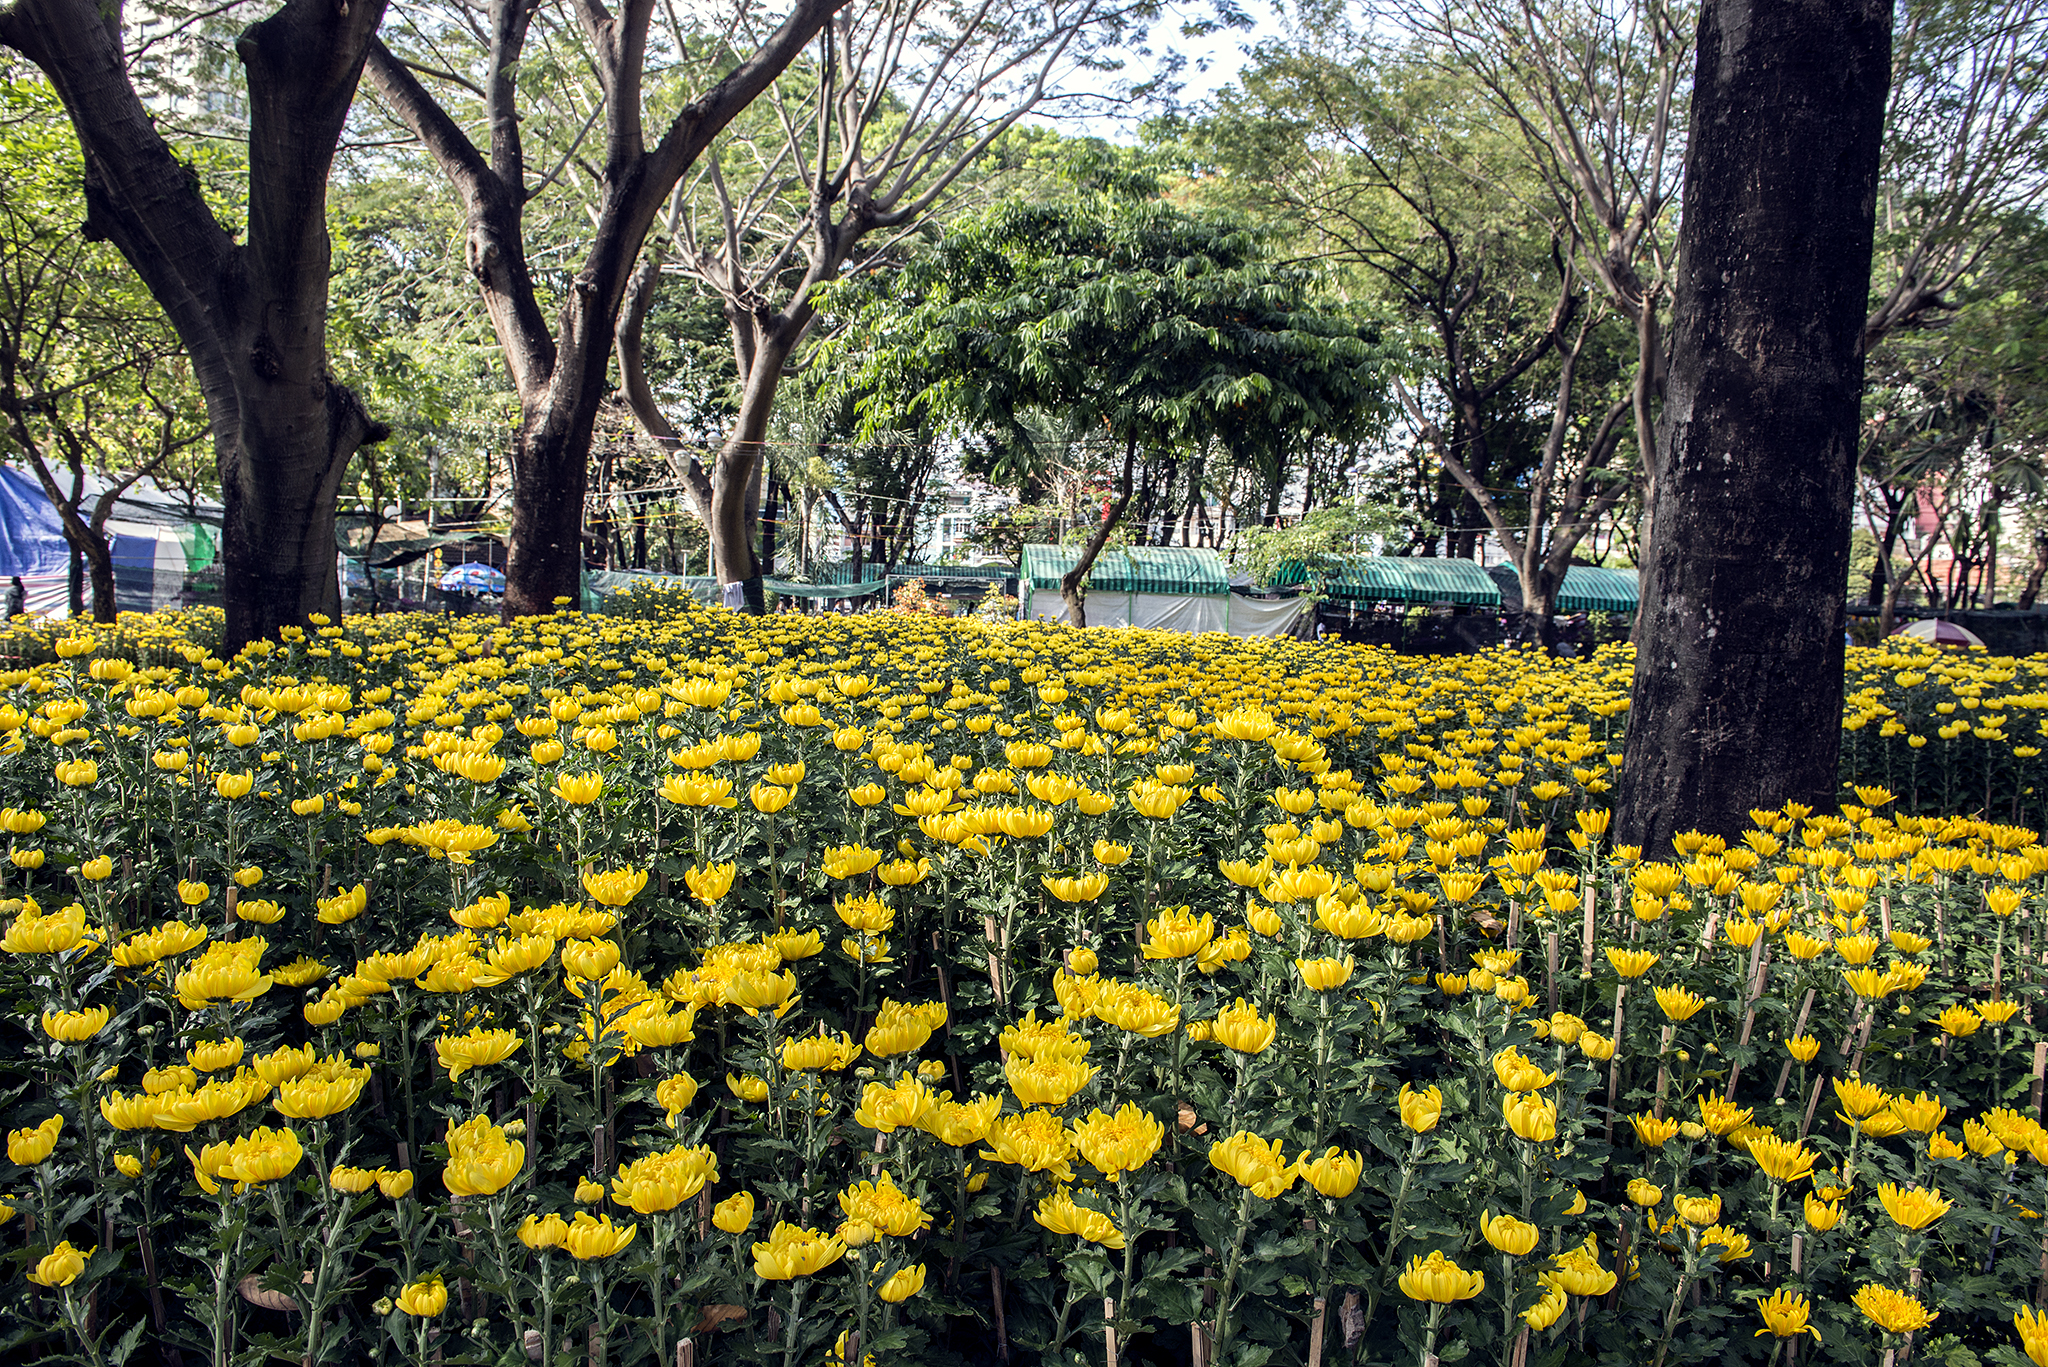 Sea of yellow flowers in a Ho Chi Minh City park